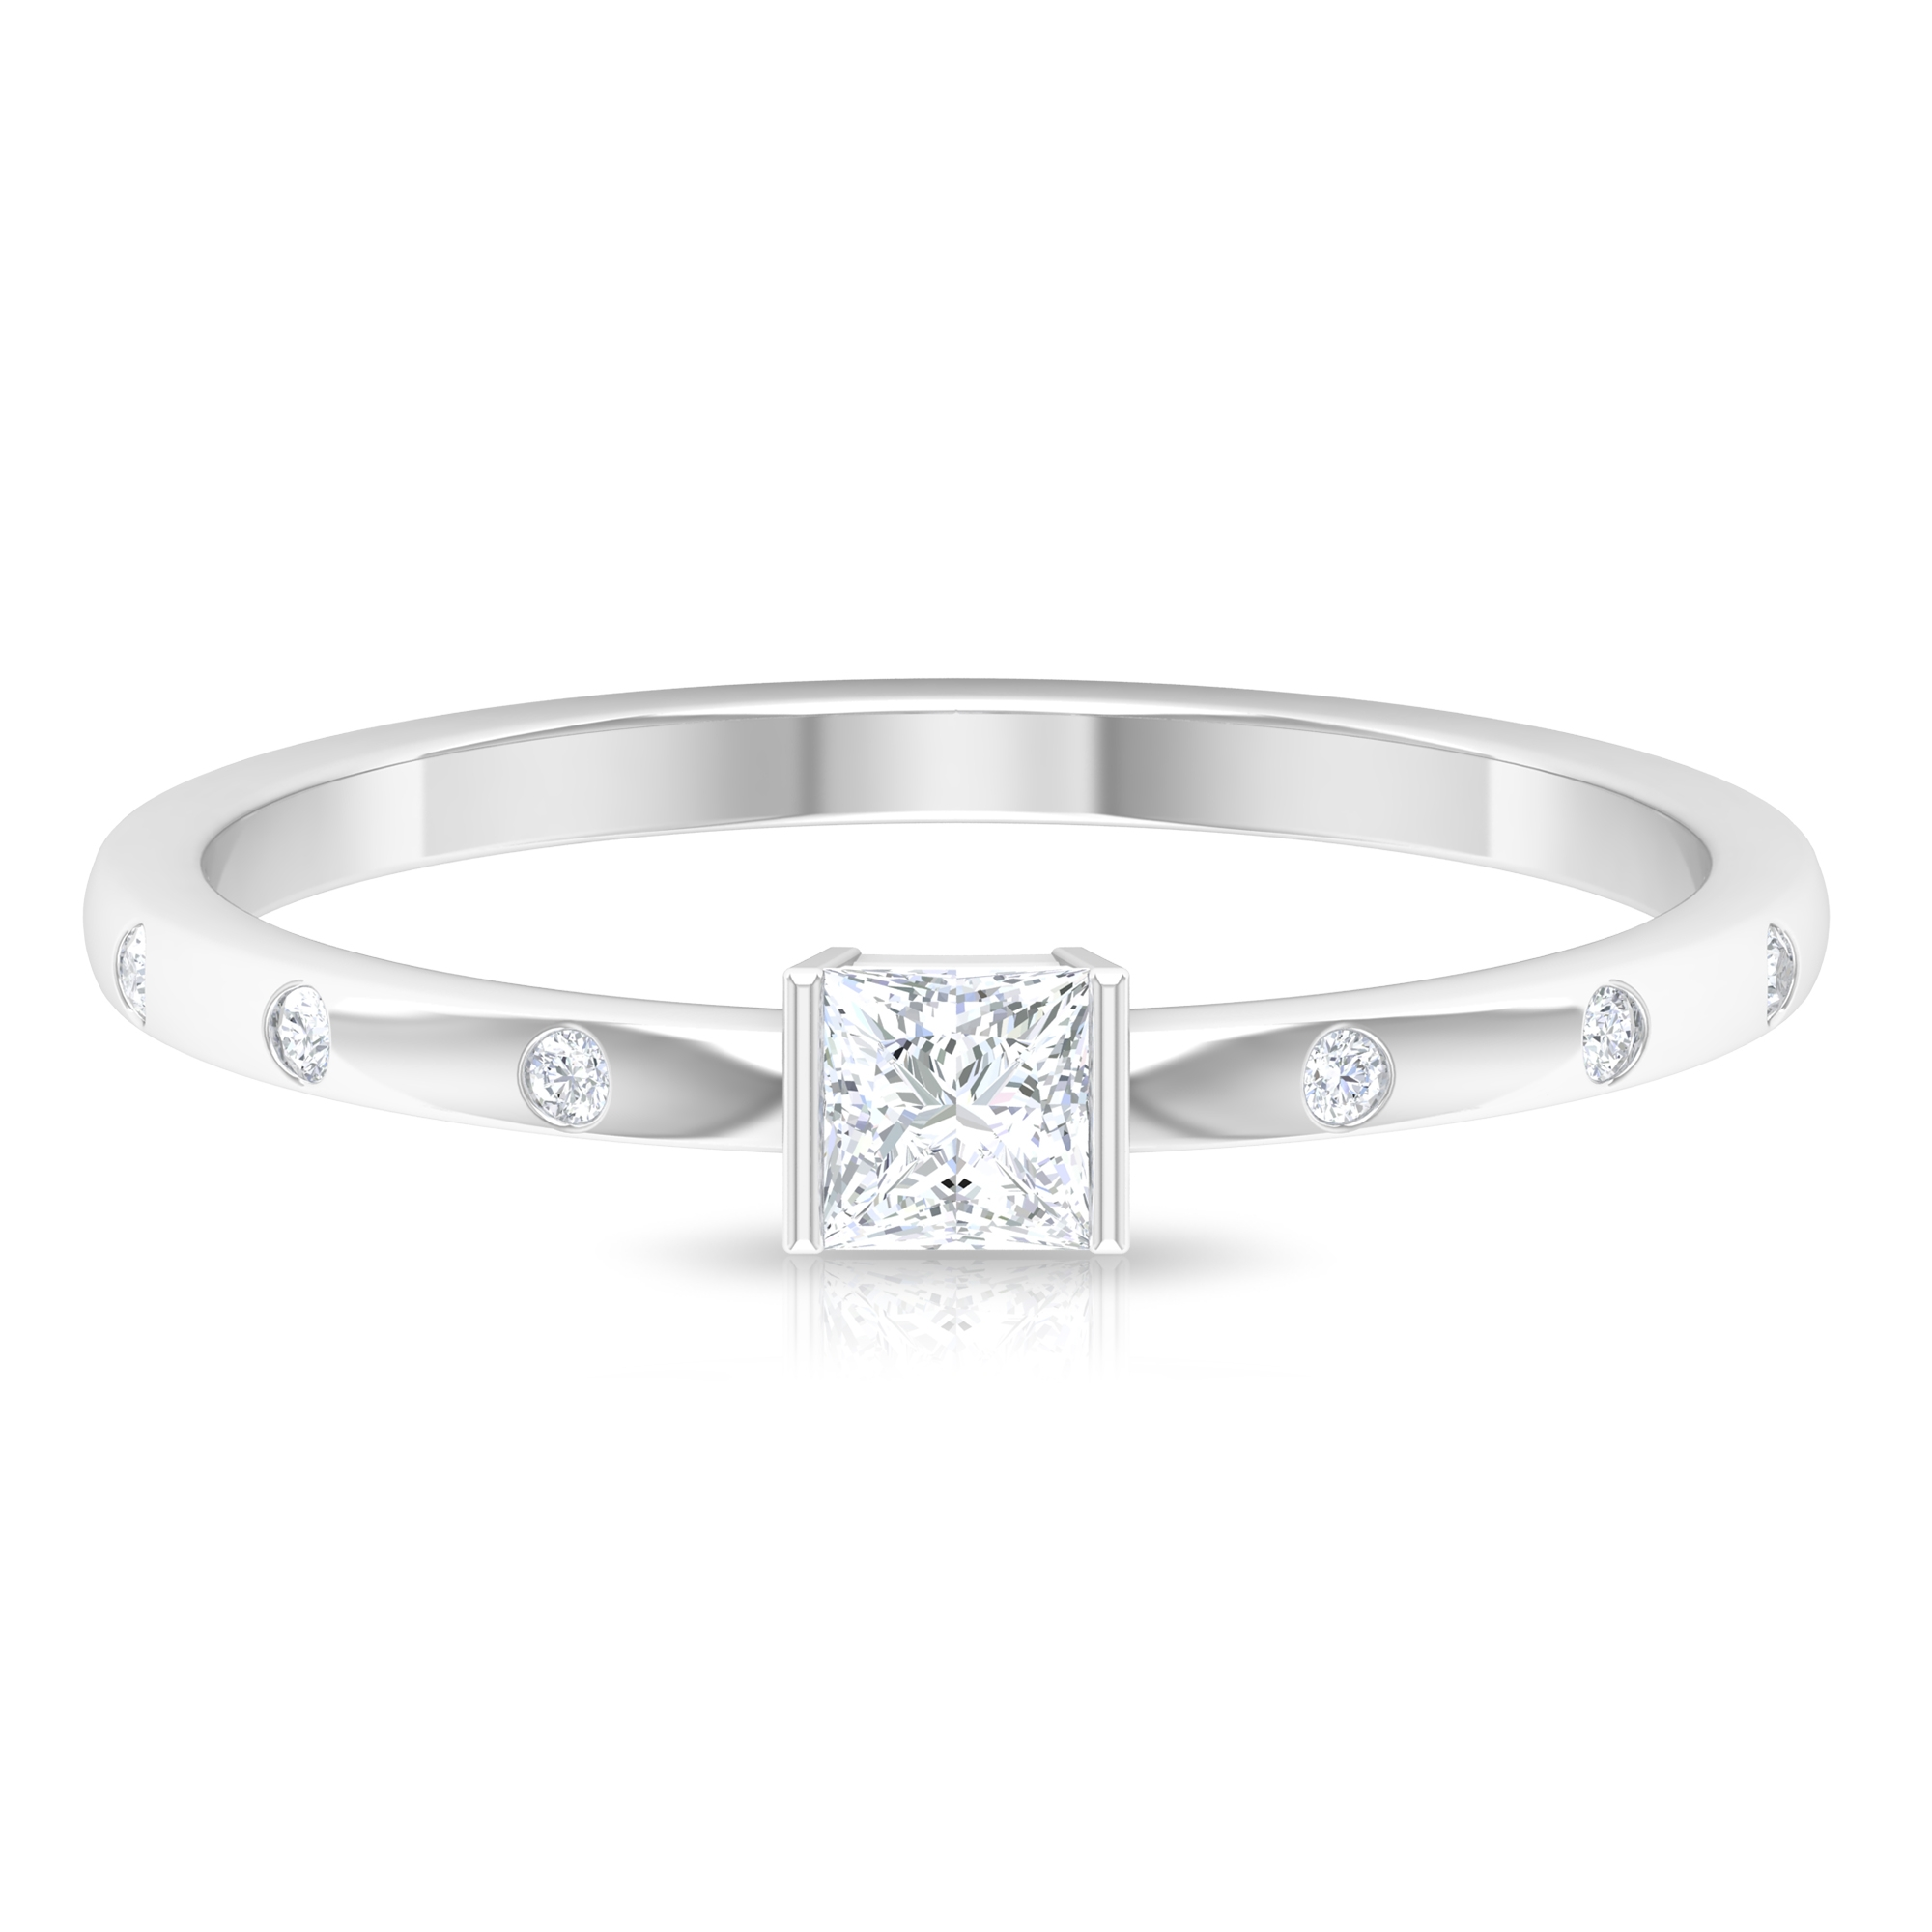 April Birthstone 1/4 CT Bar Set Princess Cut Diamond Solitaire Ring with Sleek Accent Side Stones